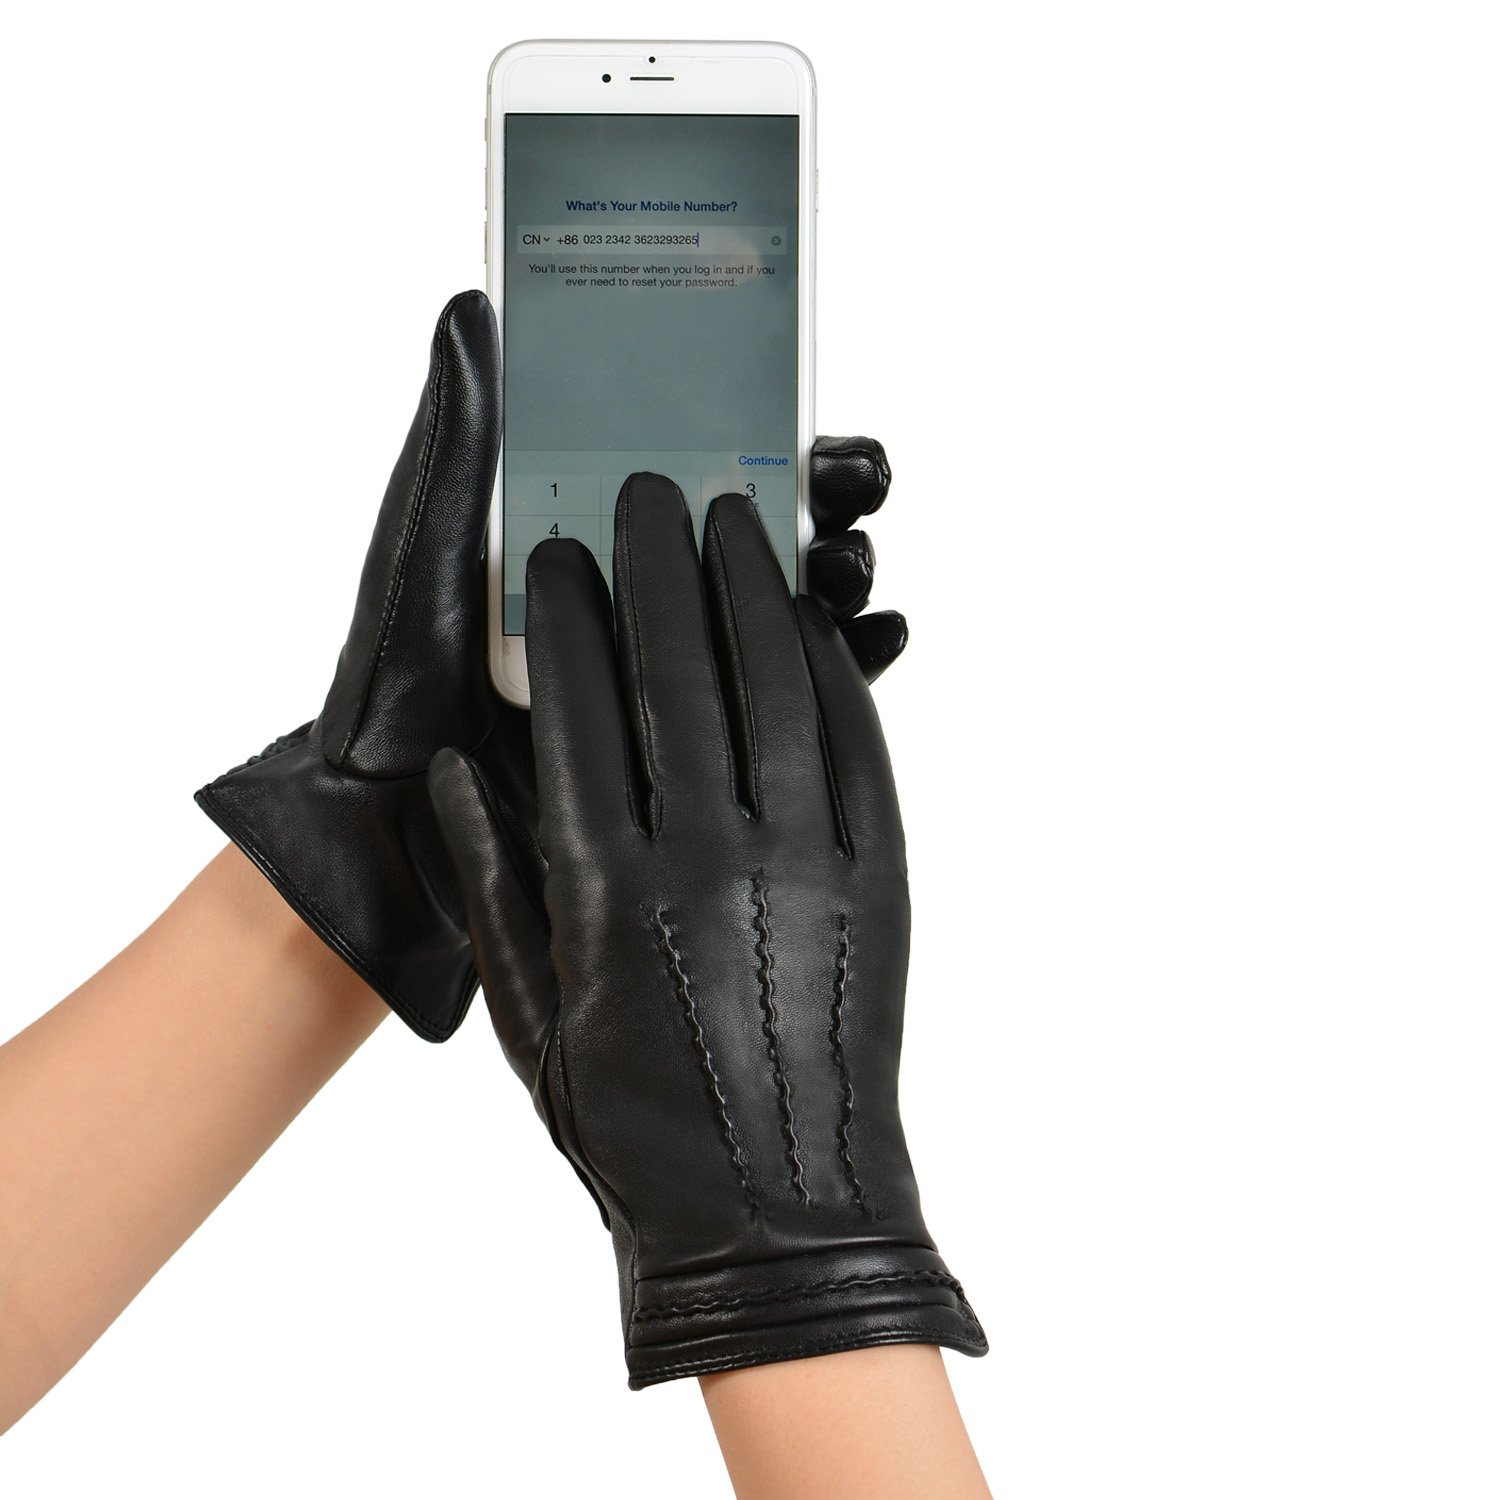 GSG Womens Winter Full Palm Touchscreen Italian Genuine Nappa Leather Gloves Lady Driving Couple Gloves L Black-HI